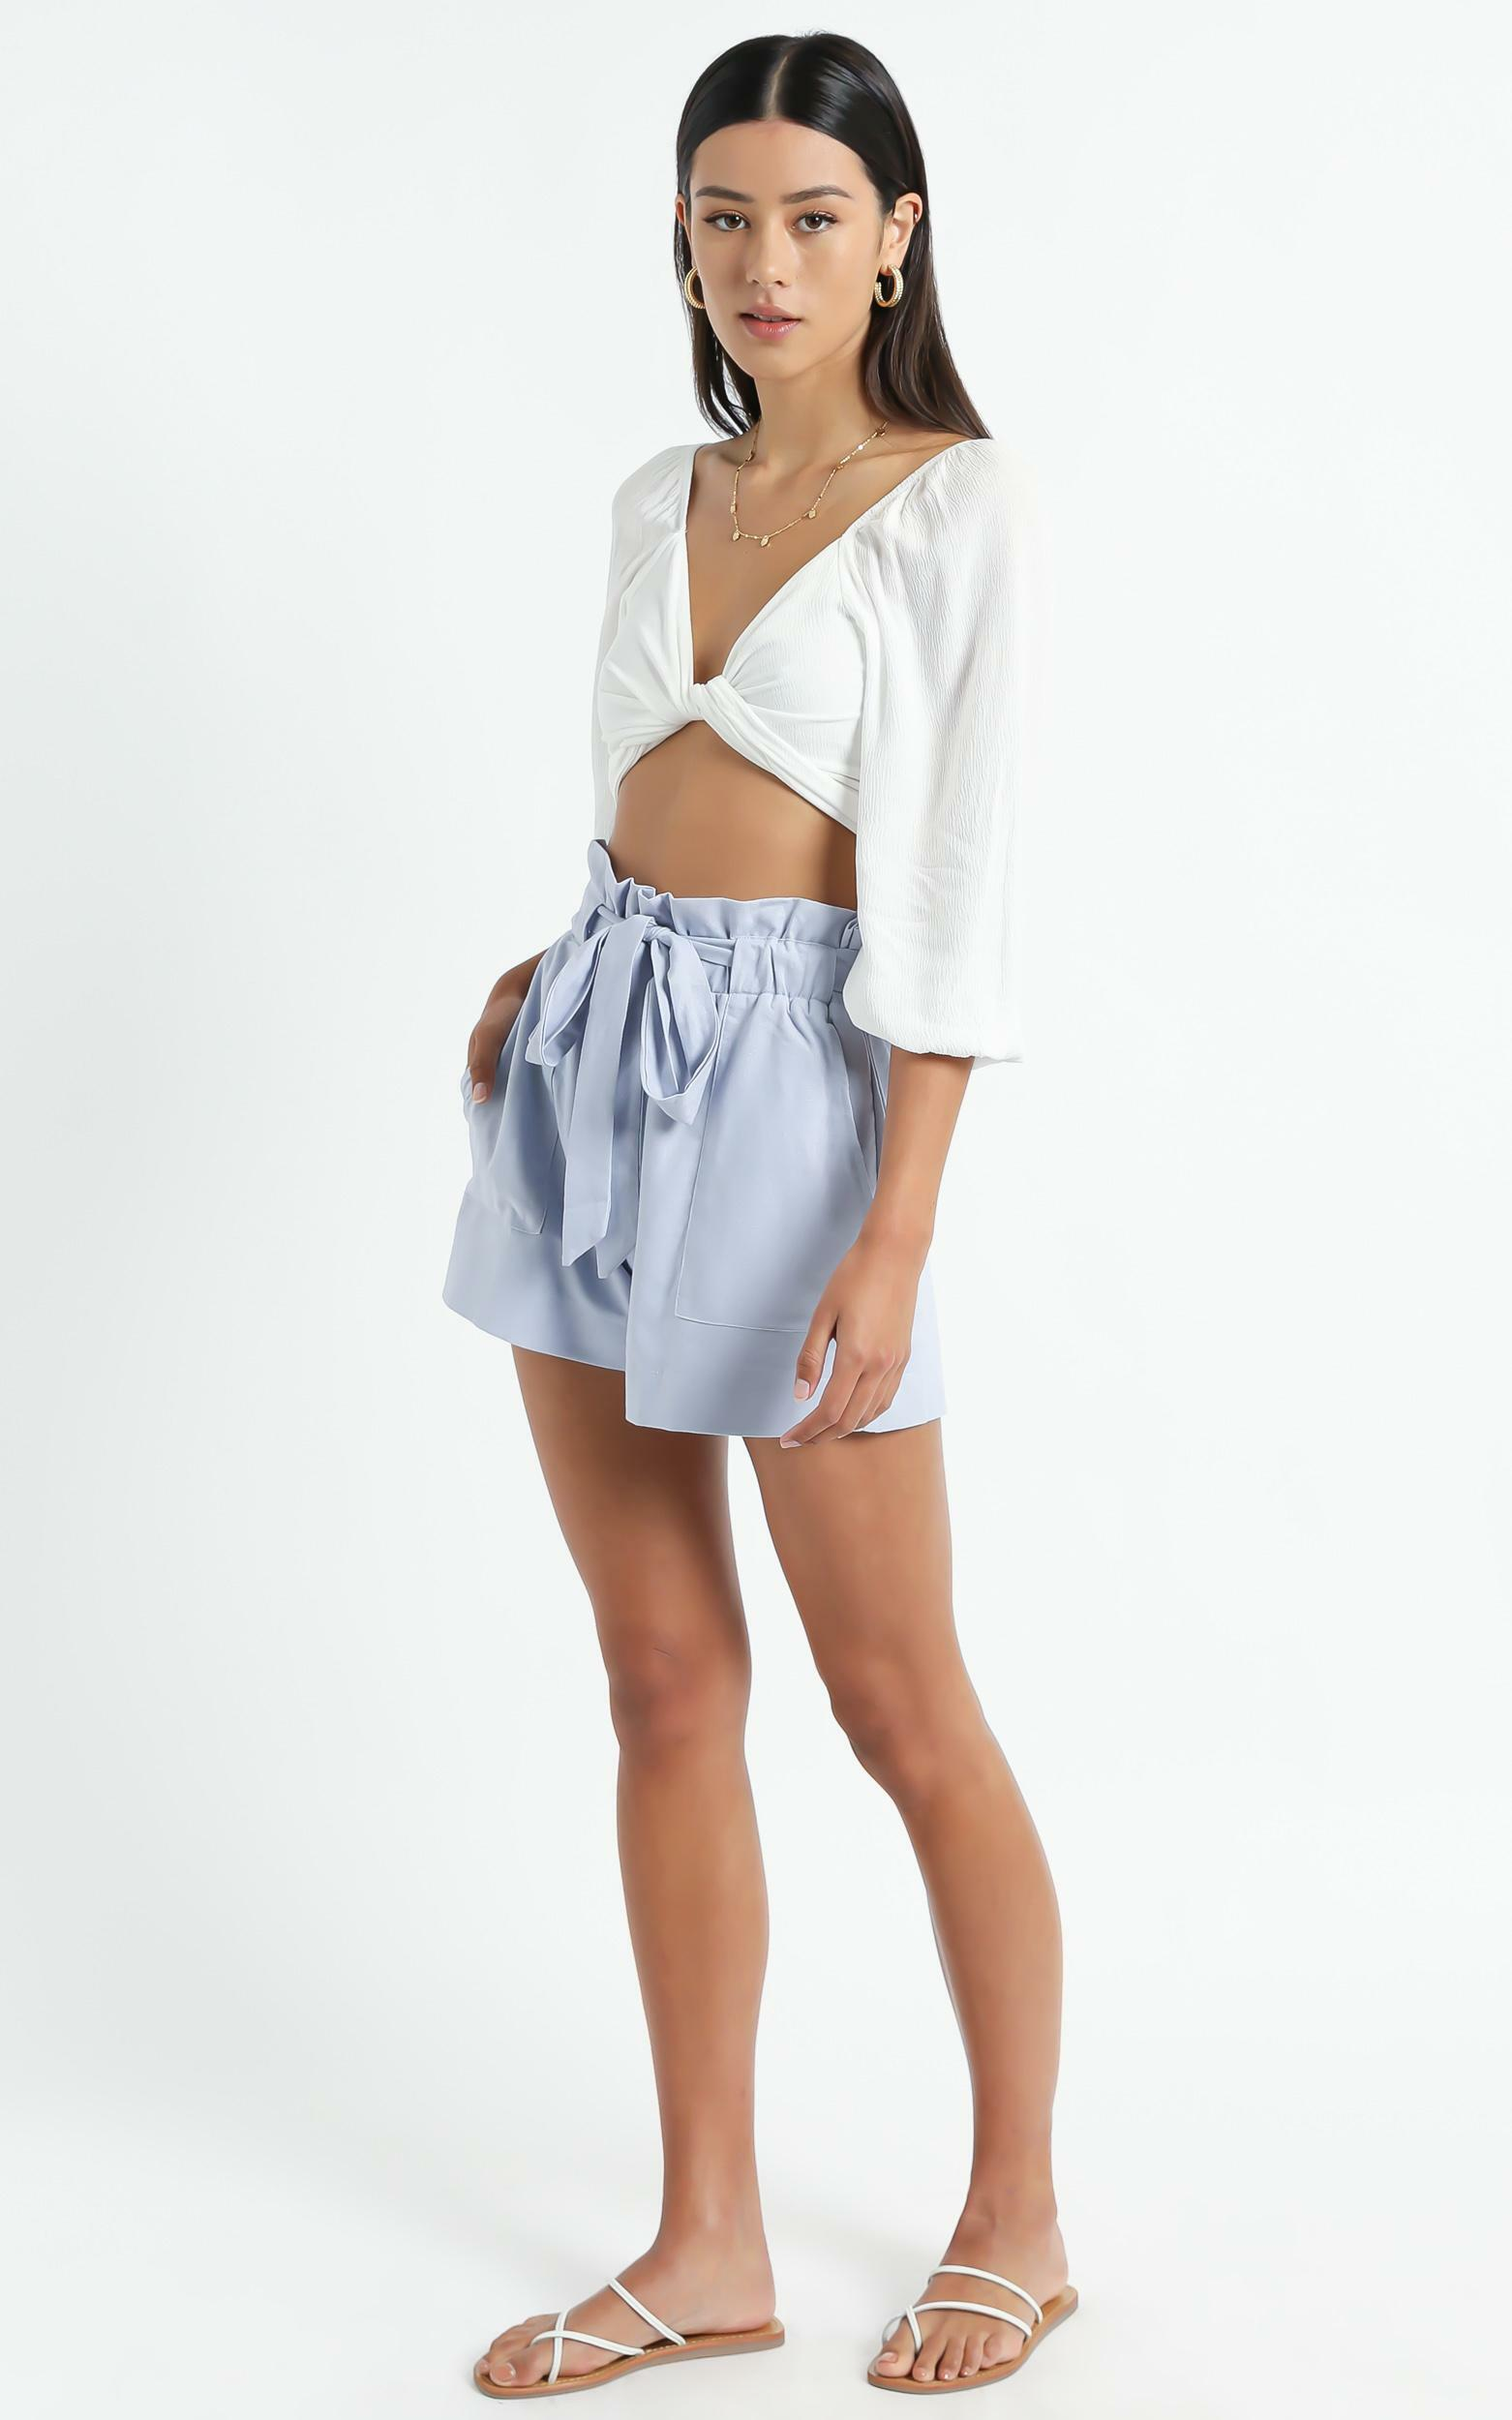 All Rounder Shorts in Powder Blue - 6 (XS), BLU5, hi-res image number null